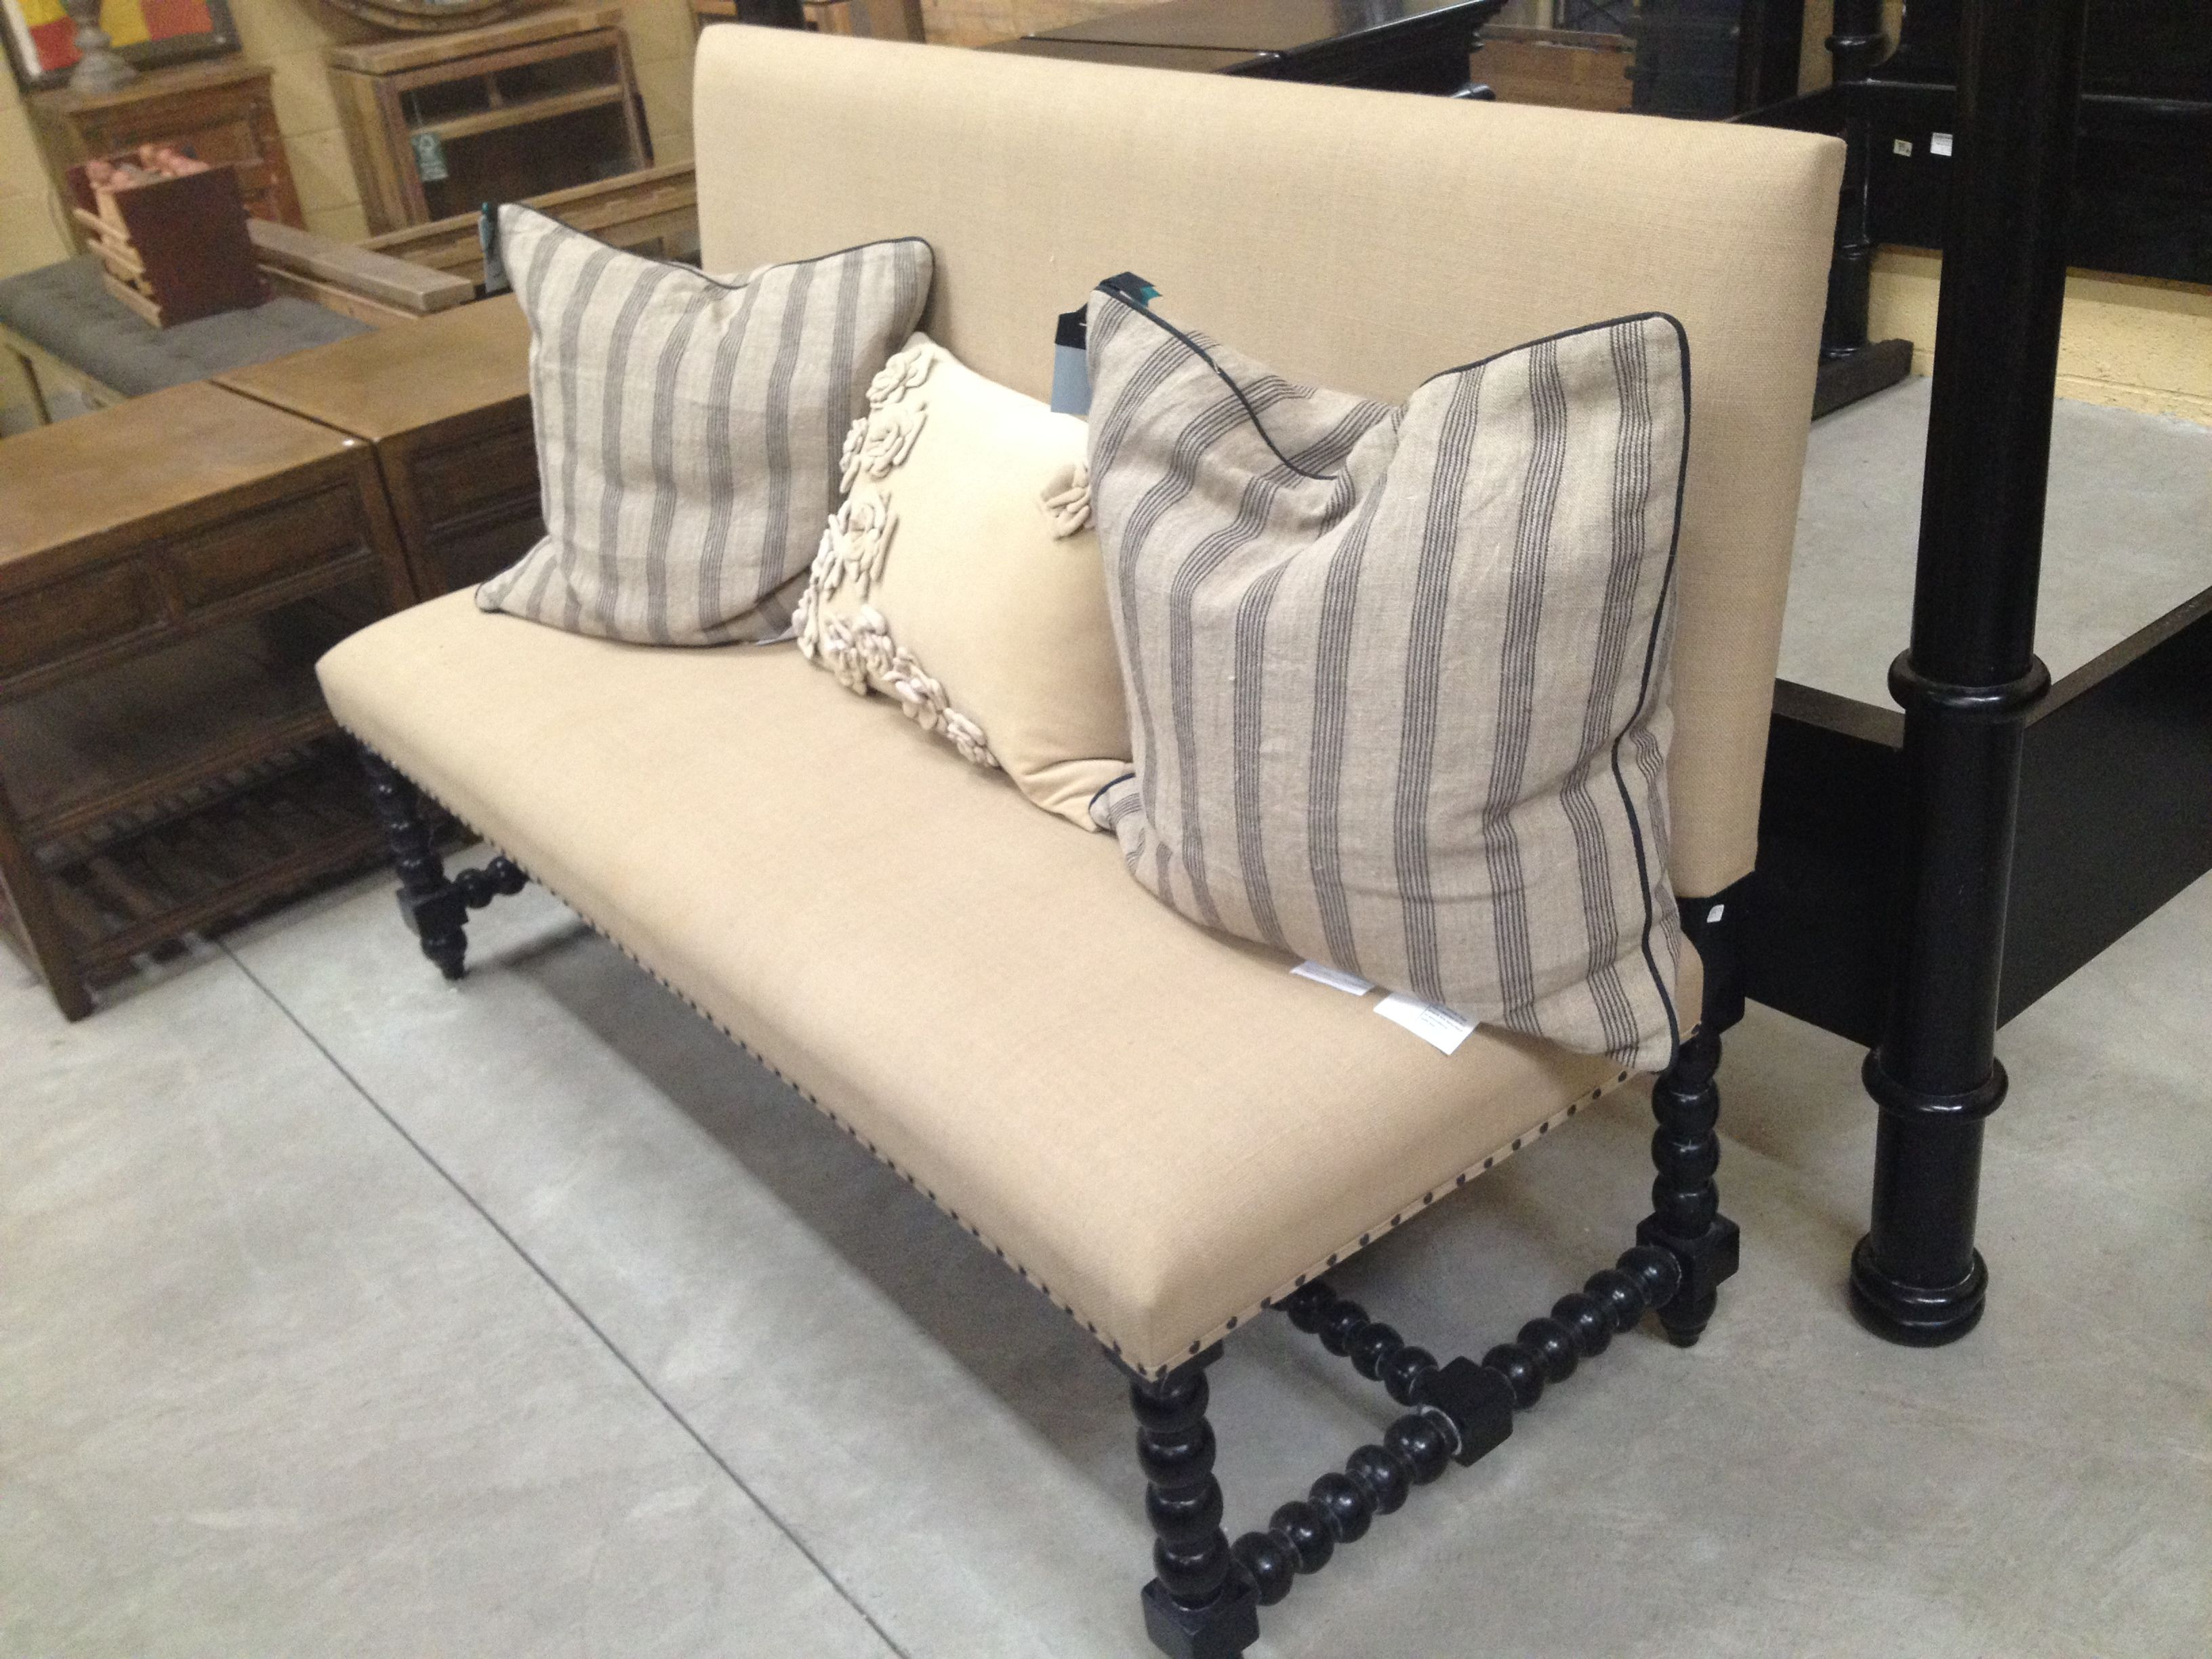 Dining Table Bench A Small Armless Sofa Would Make A